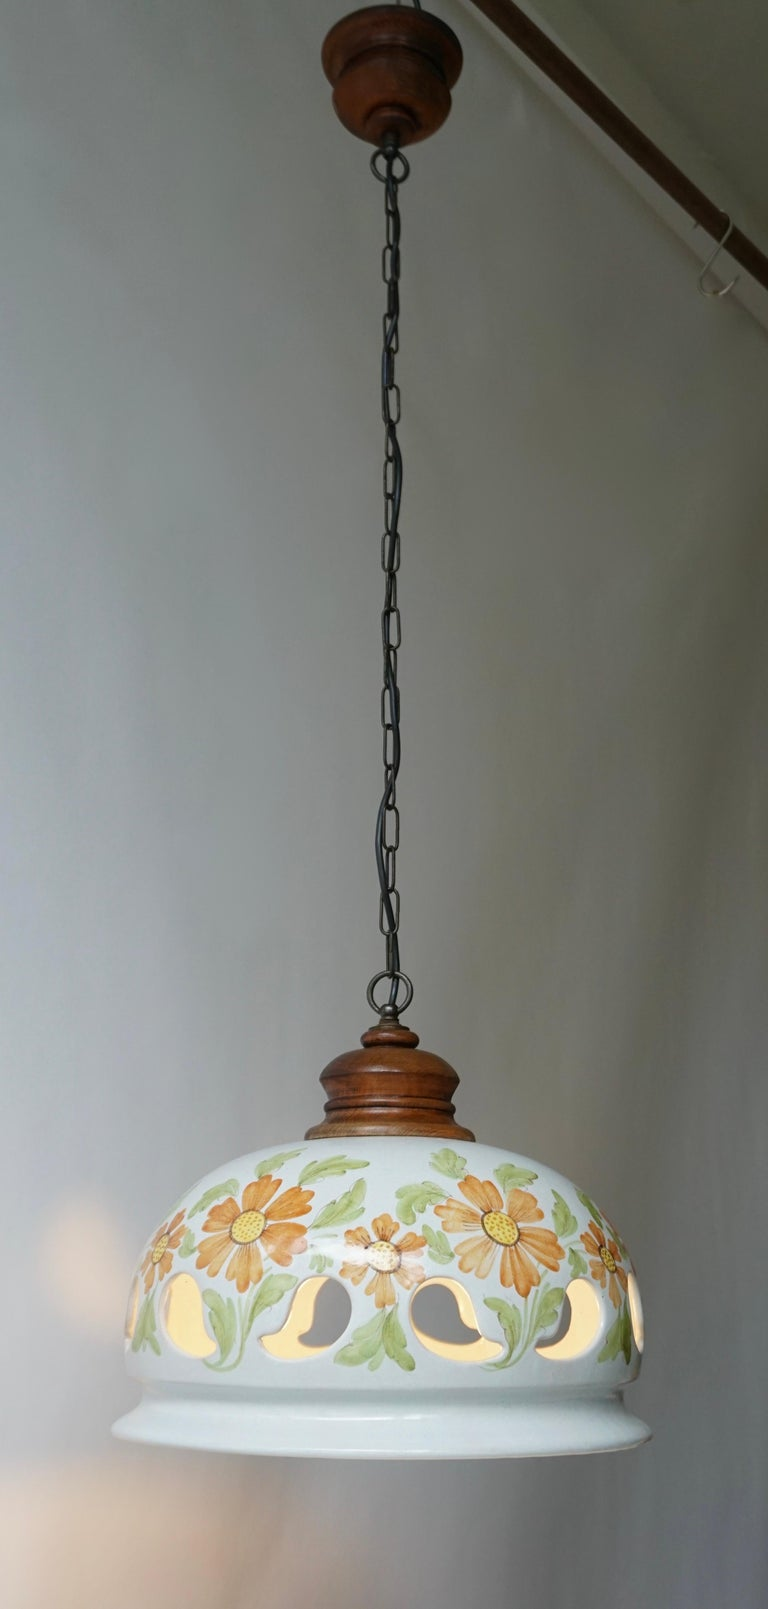 Hand-Painted Italian Ceramic Lamp with Flower Decoration, 1970s For Sale